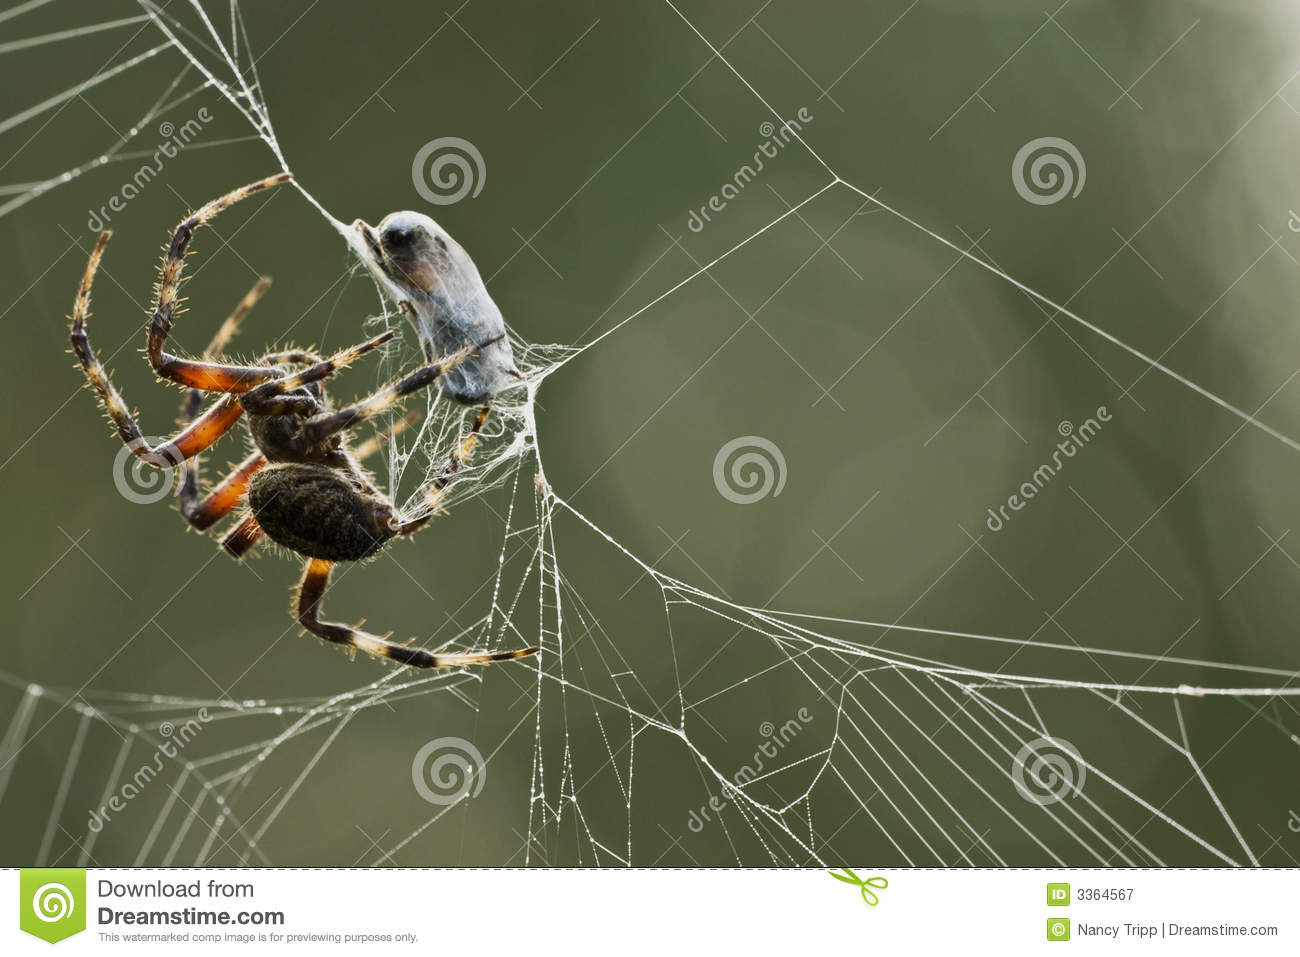 Spider Wrapping Prey In A Cocoon Royalty Free Stock Image.